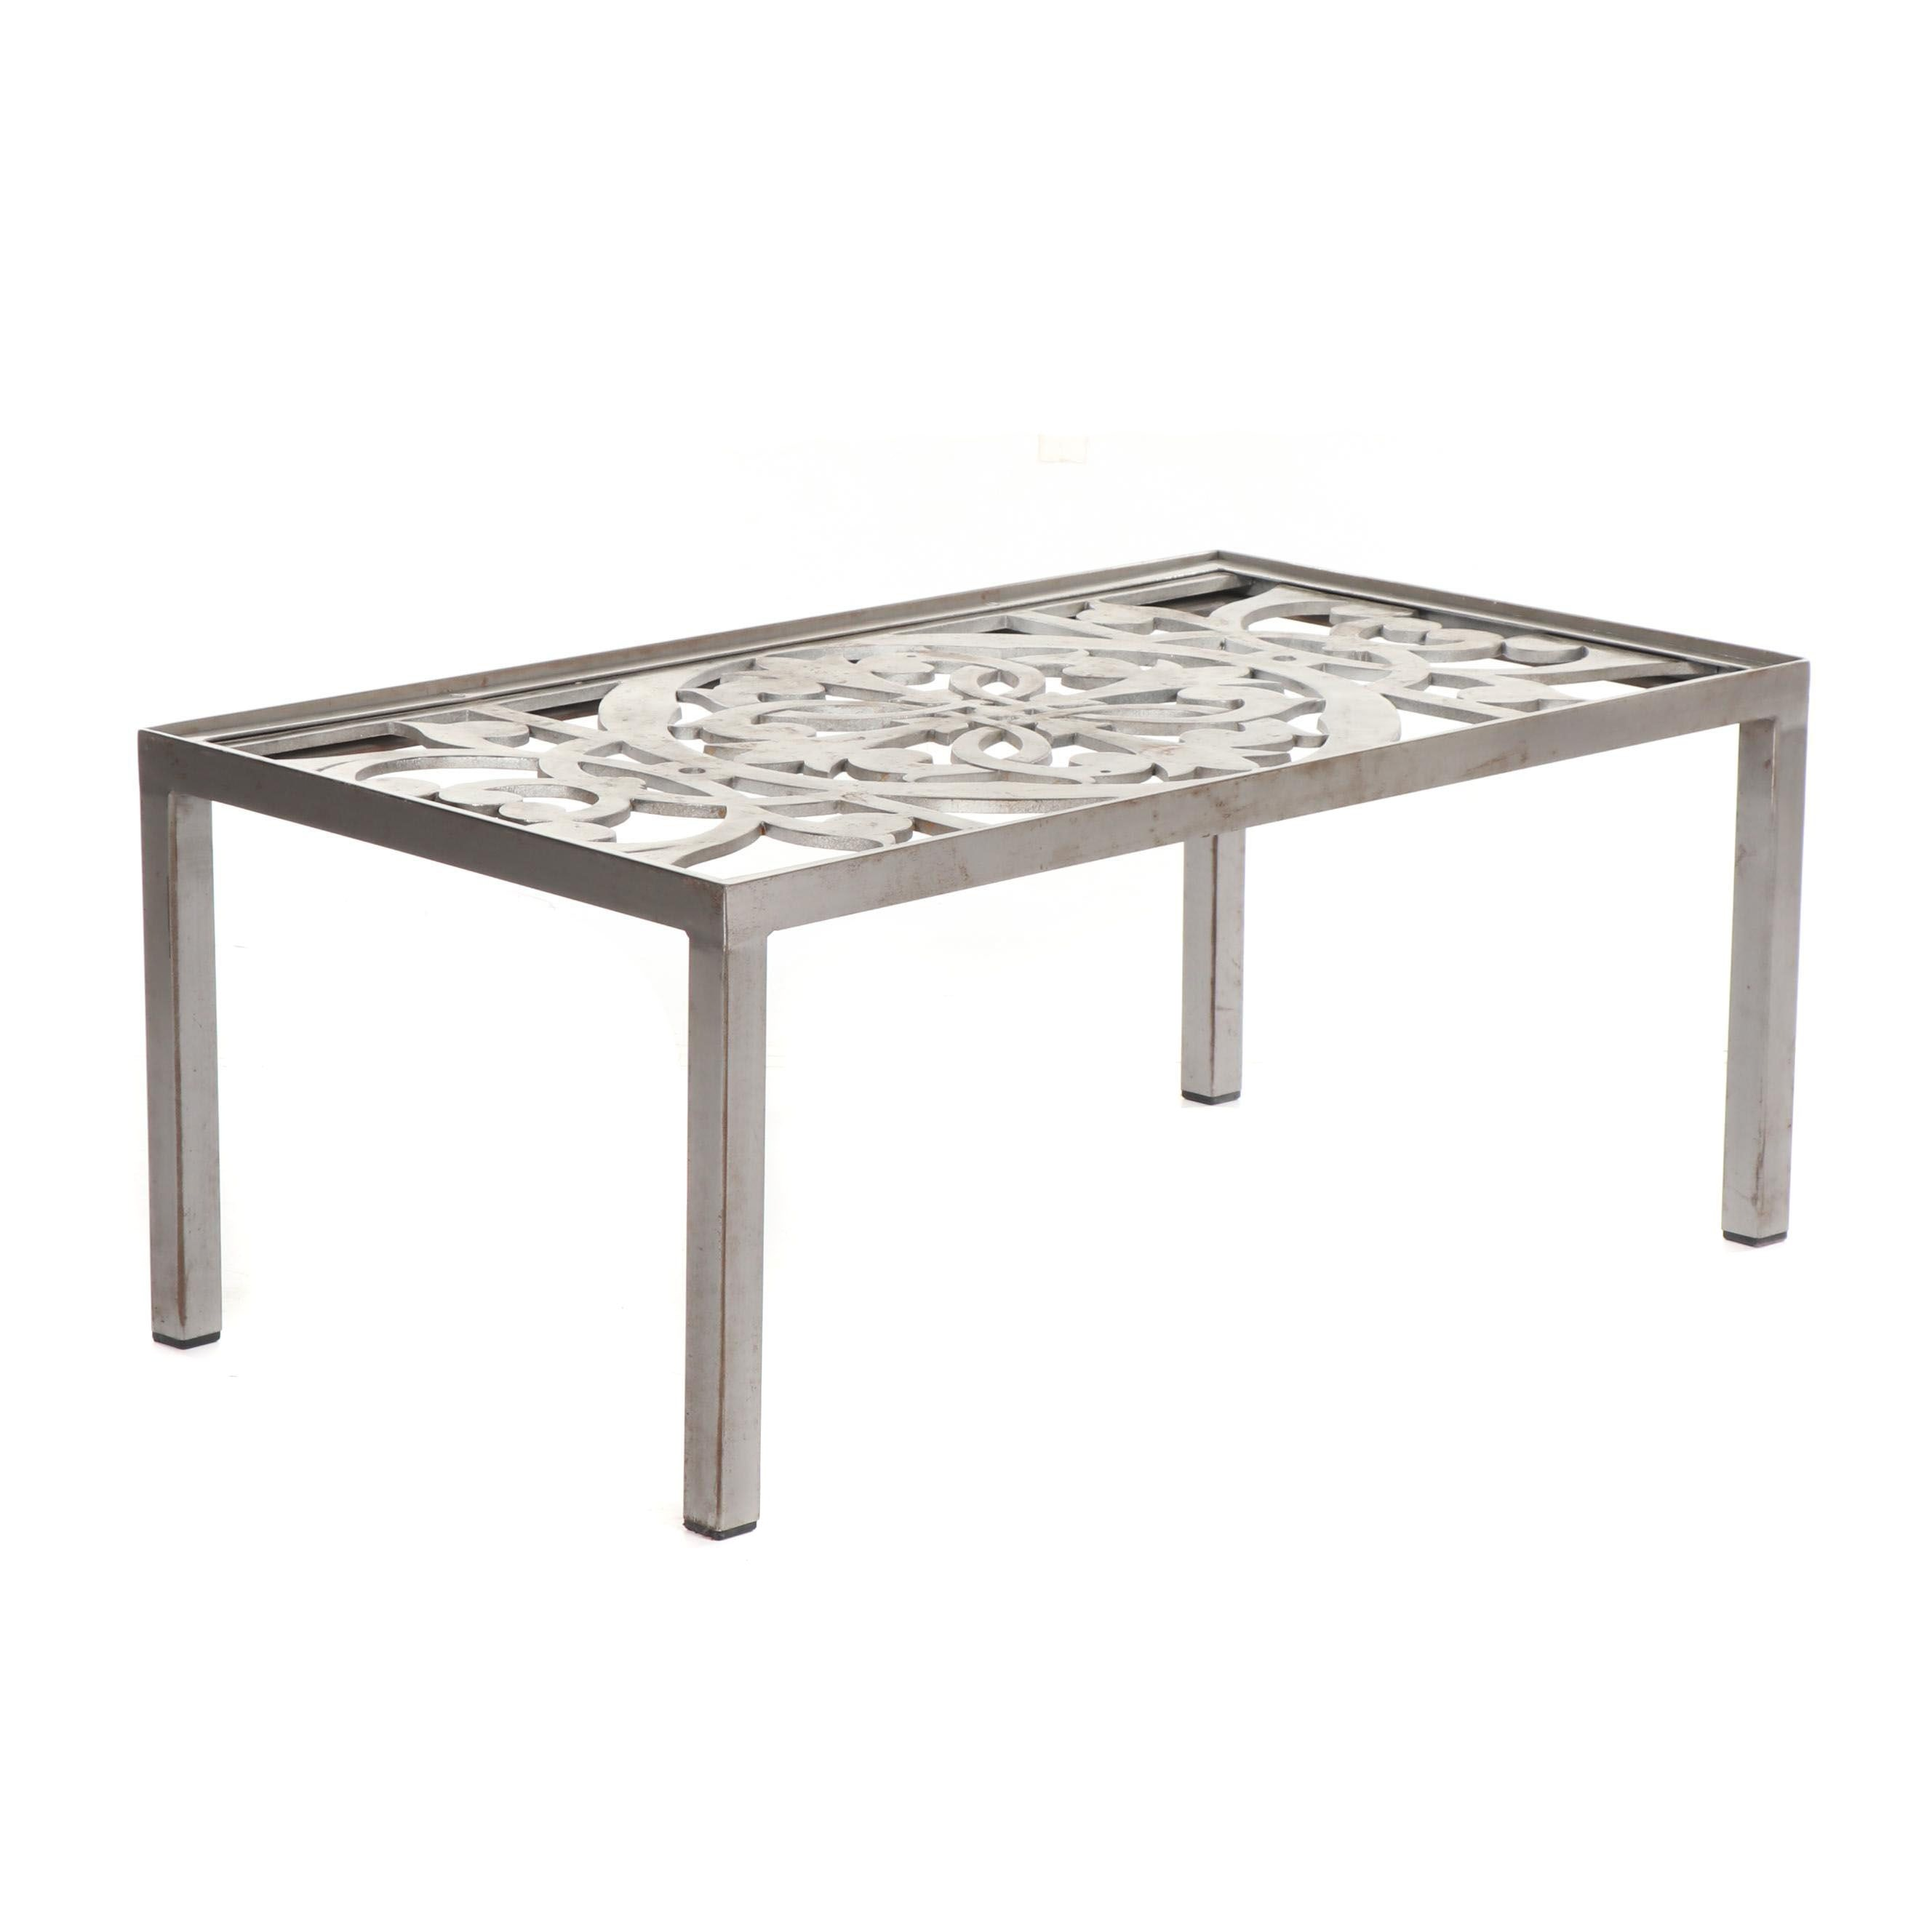 Openwork Metal Coffee Table, 21st Century